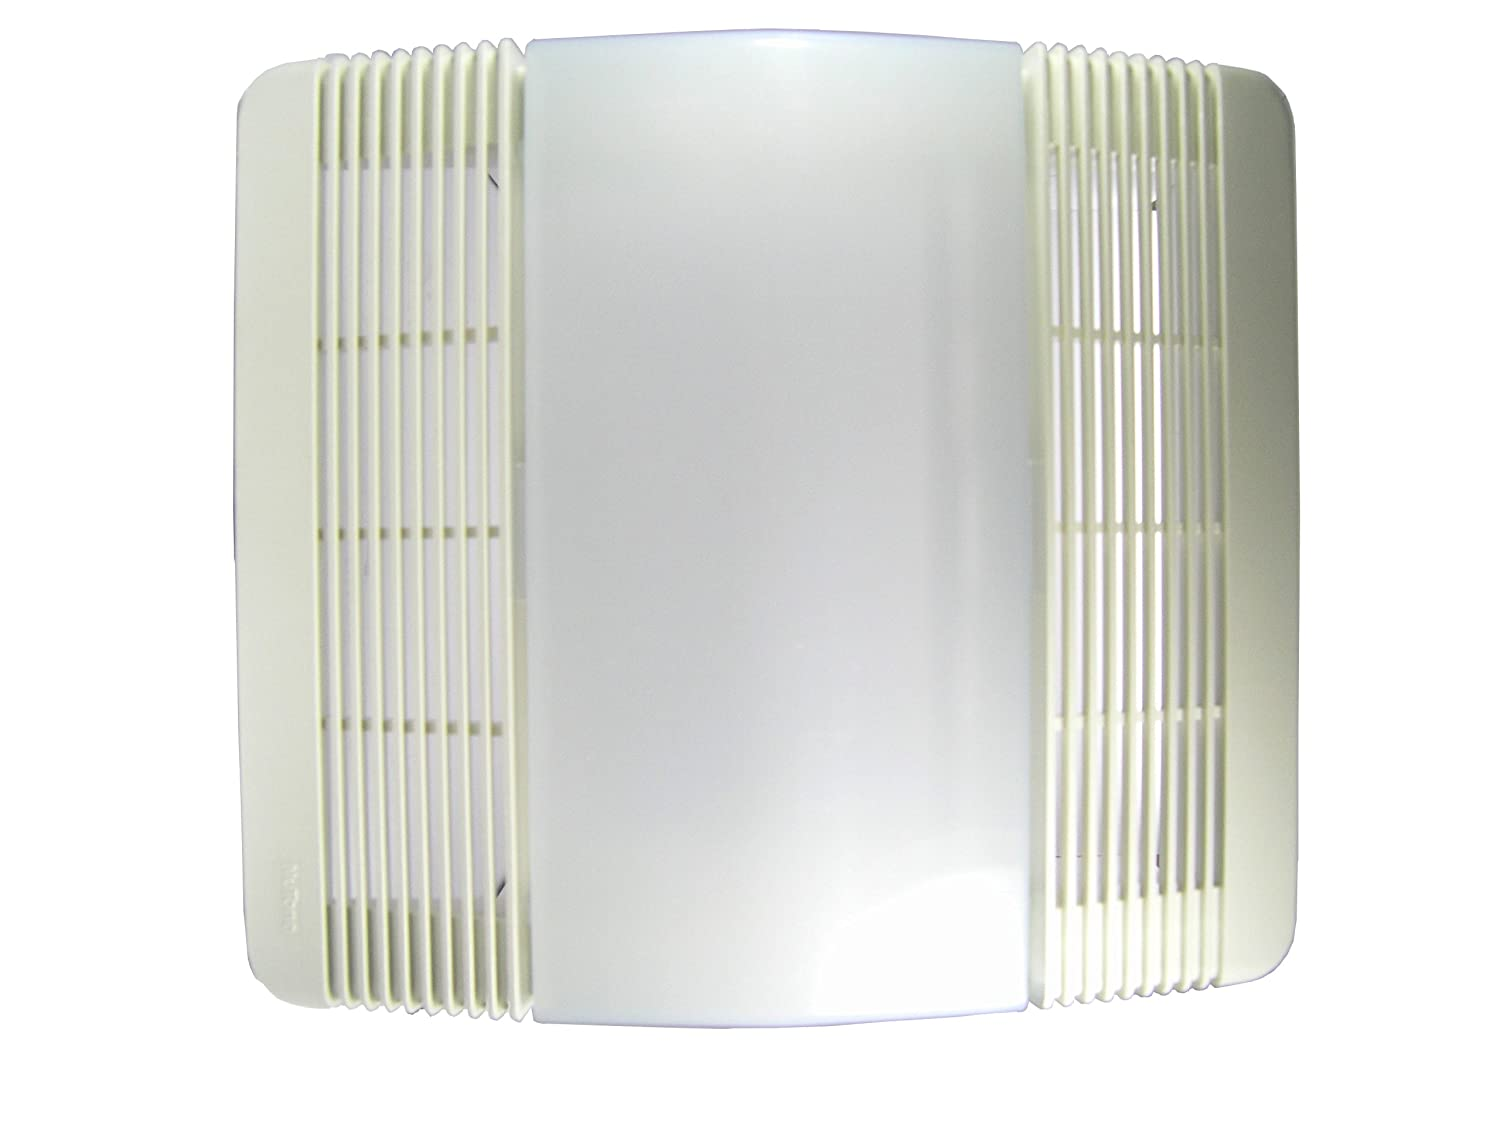 Bathroom Fan Cover Nutone 85315000 Heater And Ventilation Fan Lens With